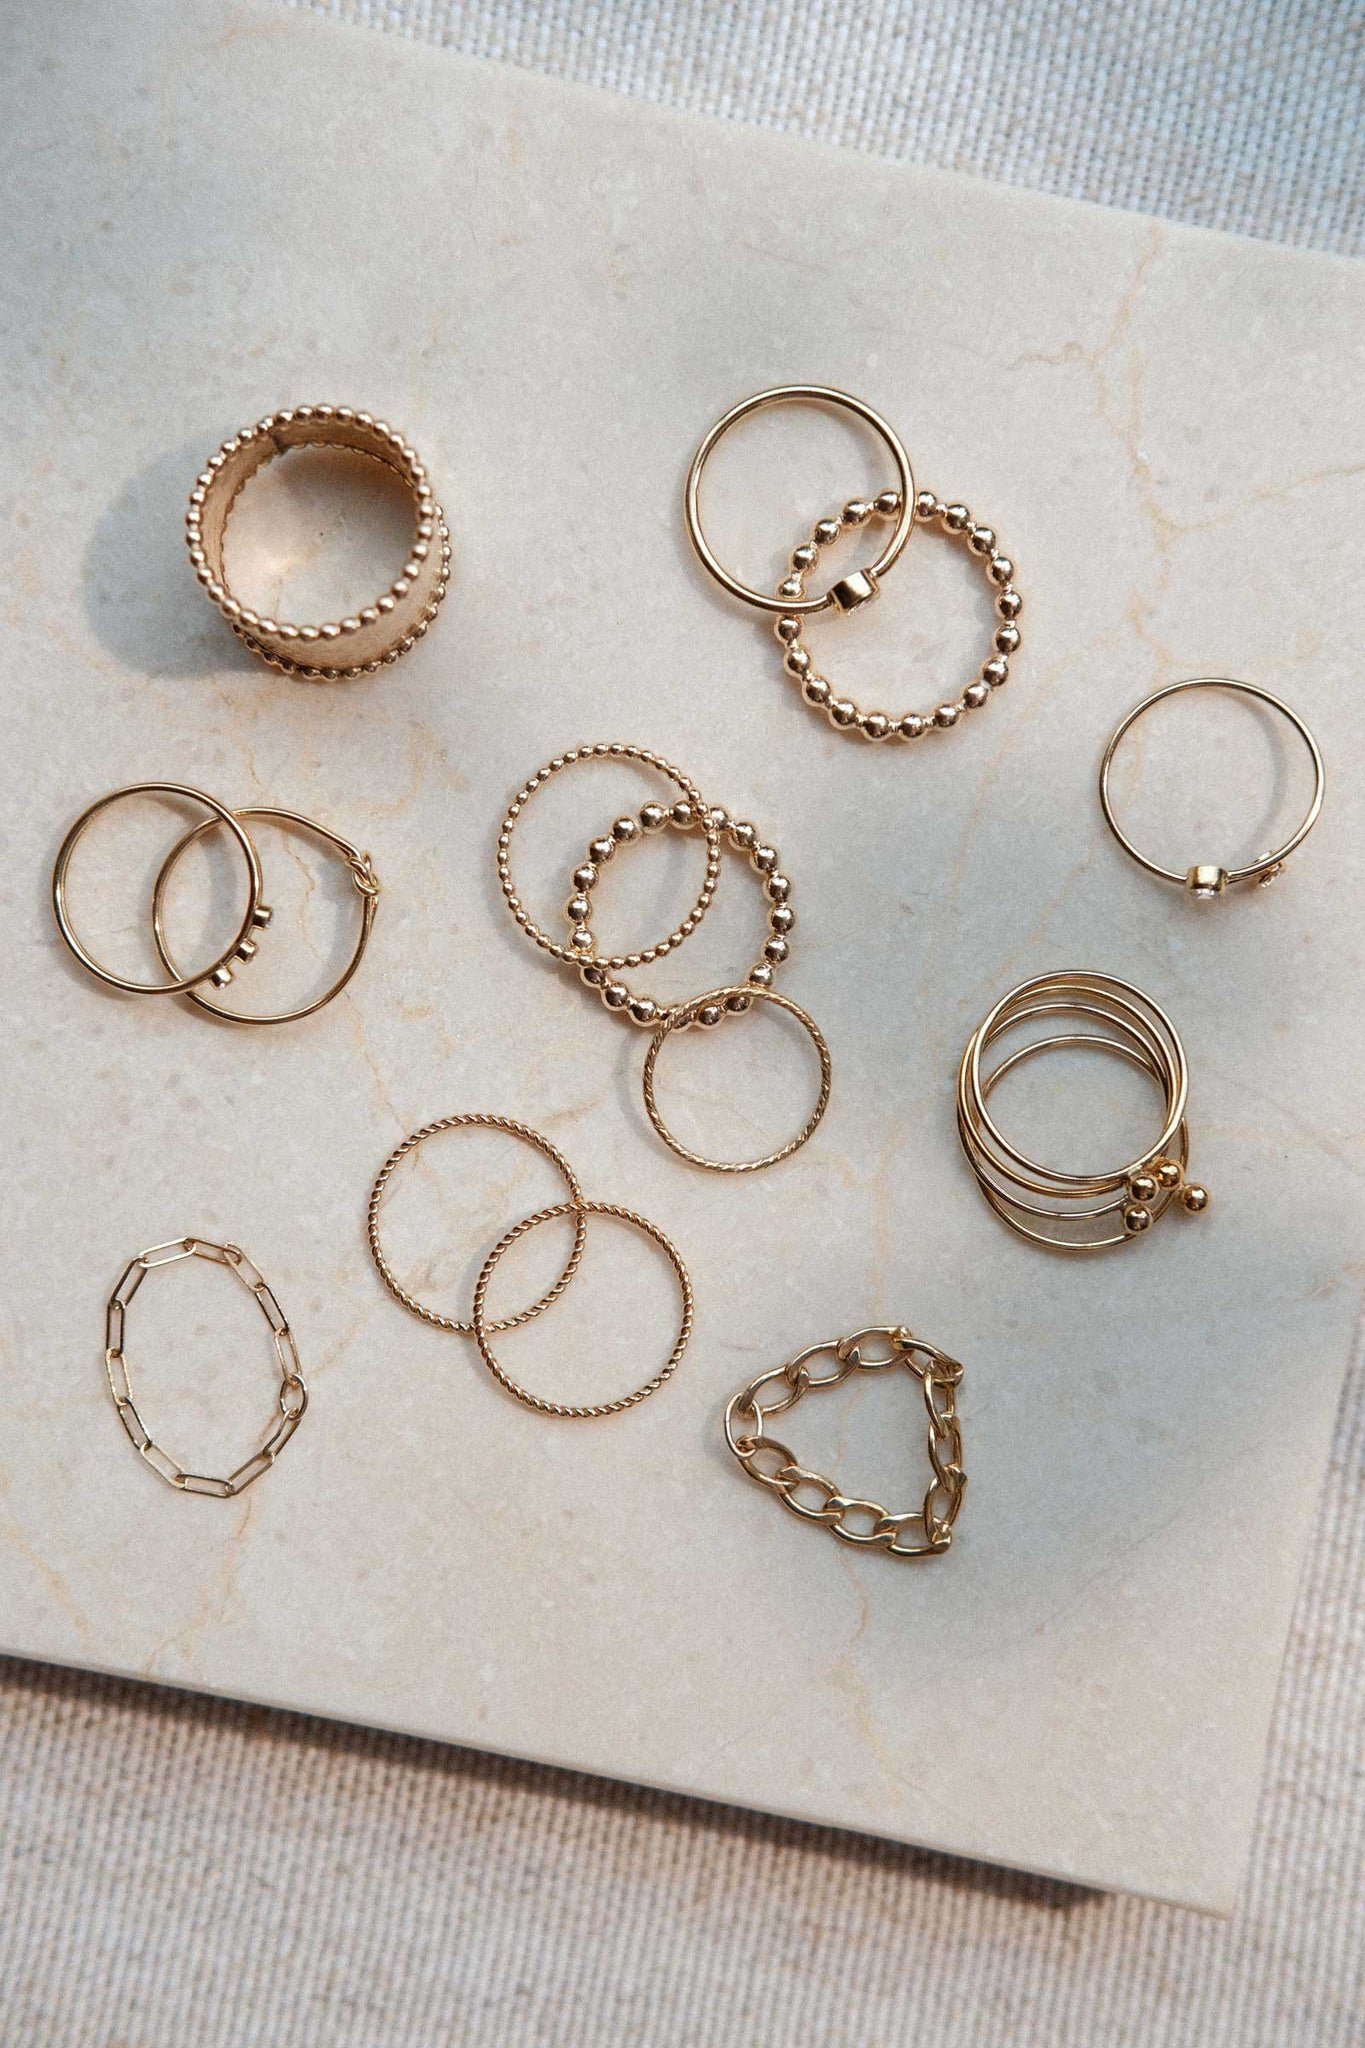 a set of gold filled finger rings on a marble tile surface